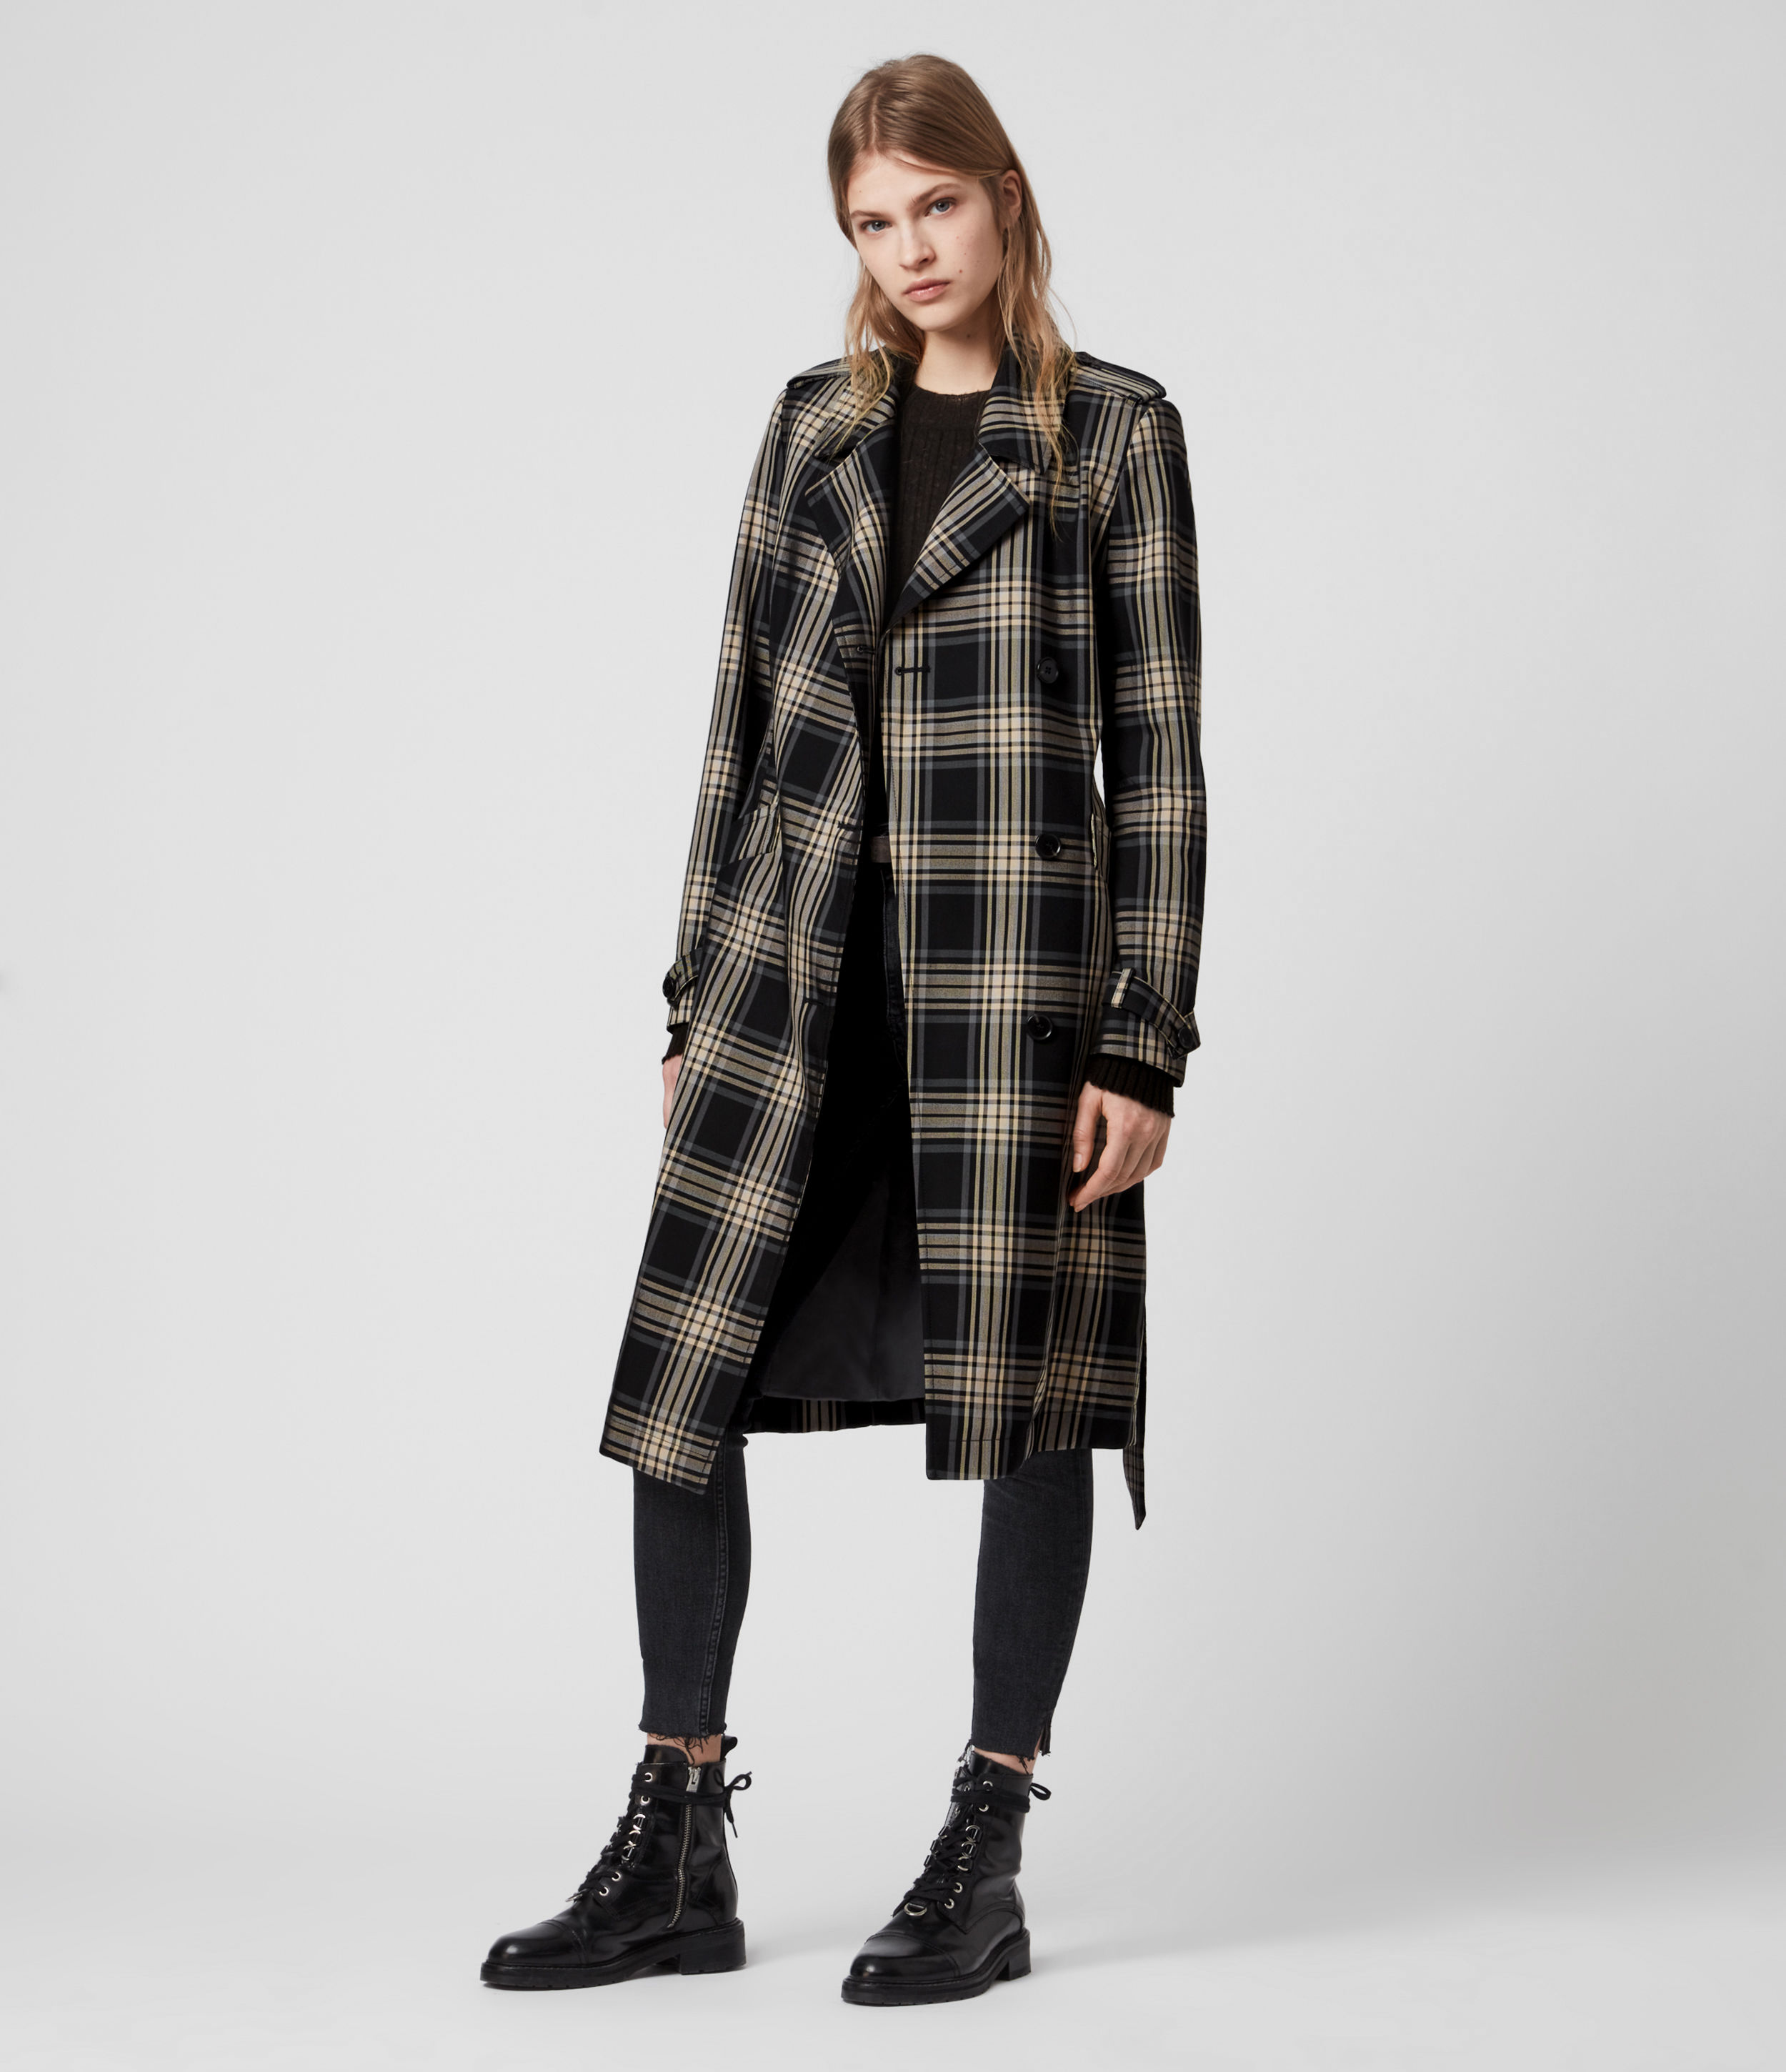 AllSaints Women's Check Lightweight Chiara Trench Coat, Black and White, Size: S